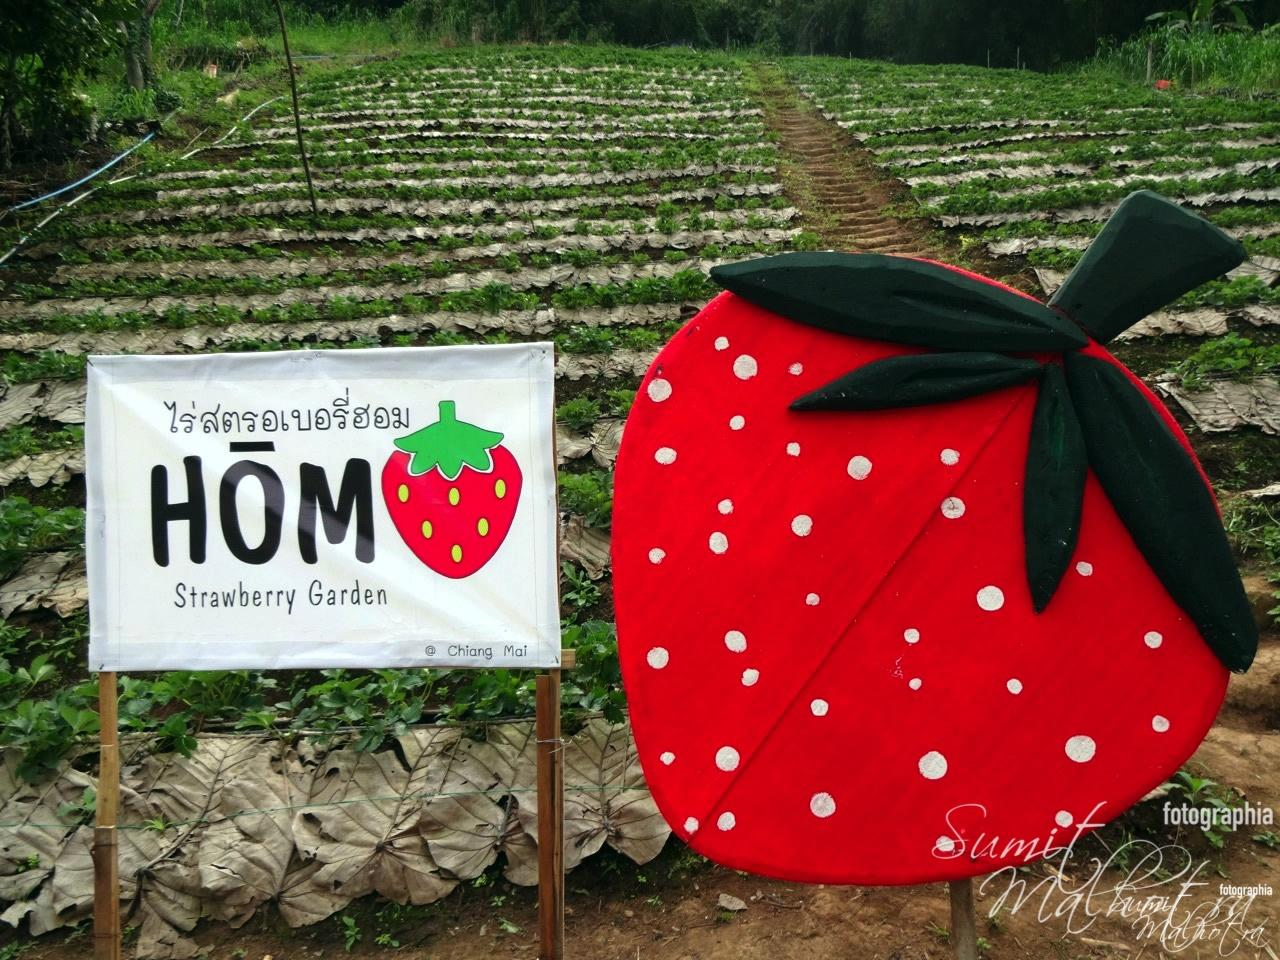 Hom Strawberry Garden, Around Karma Royal Bella Vista, Chiang Mai